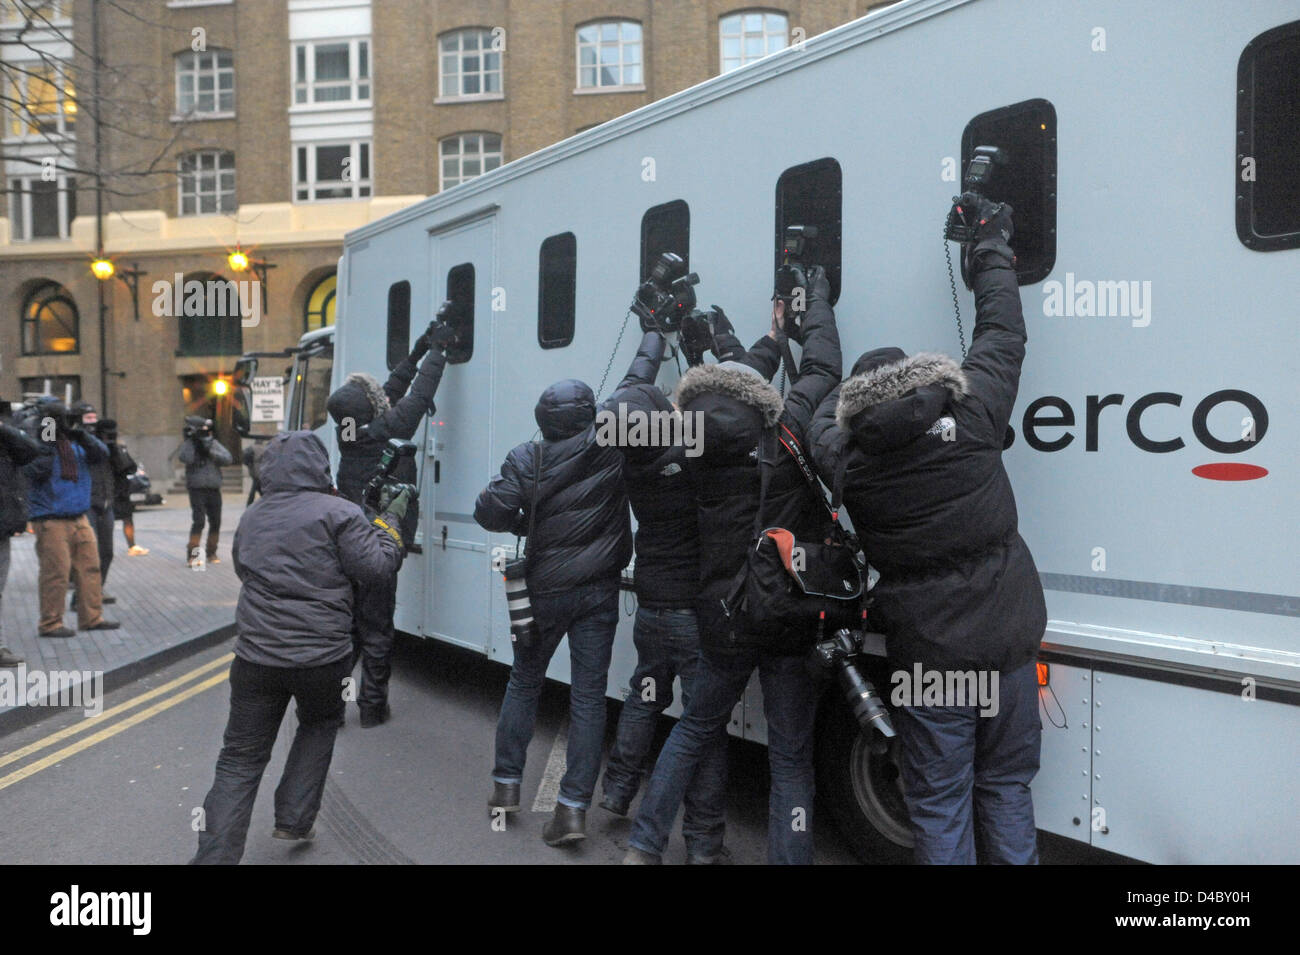 London, UK. 11th March 2013. Chris Huhne leaves Southwark Crown Court after sentencing. Credit:  JOHNNY ARMSTEAD - Stock Image